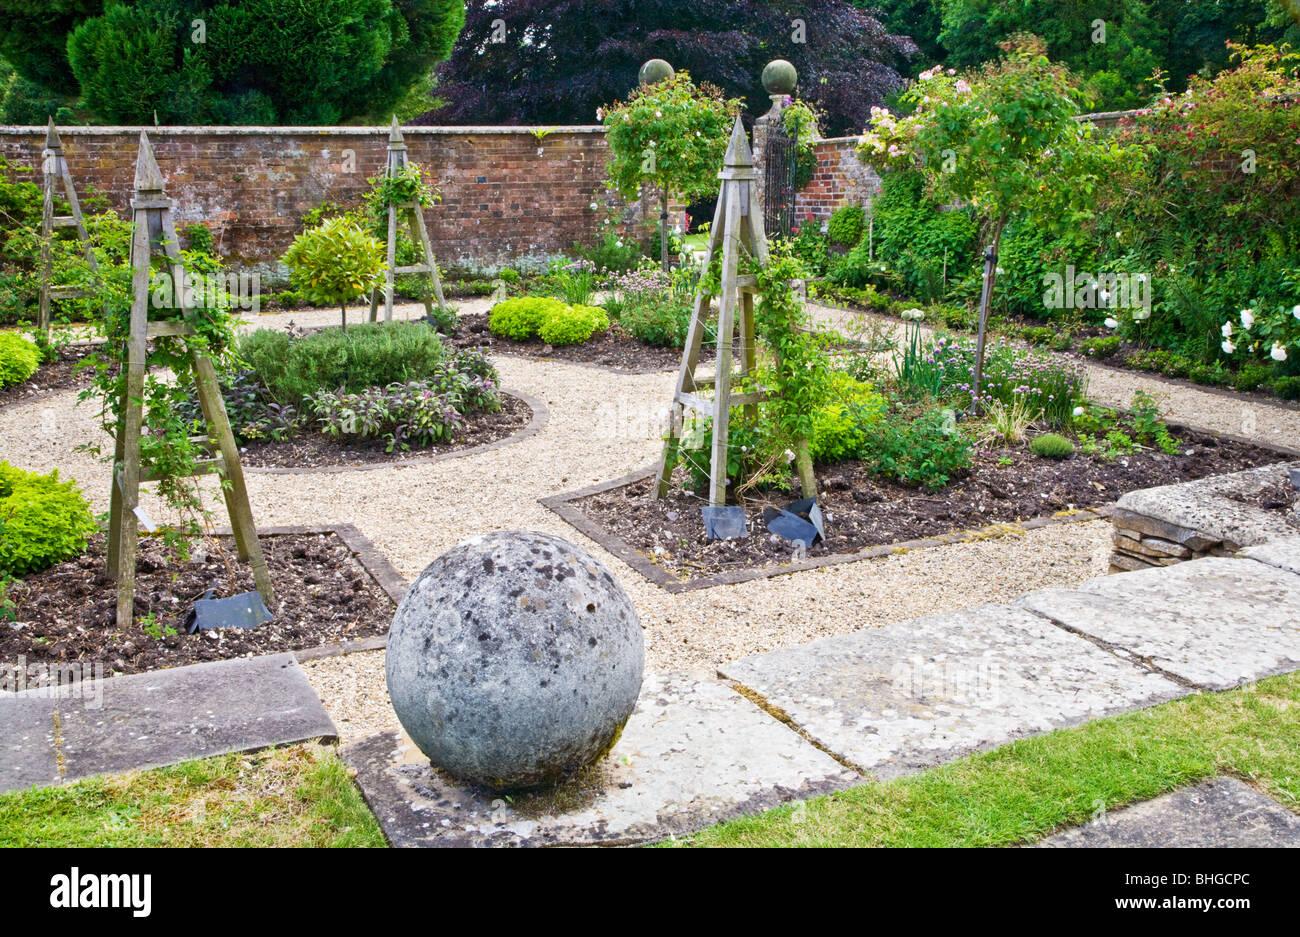 A formal walled herb or kitchen garden in the grounds of an English country house. - Stock Image